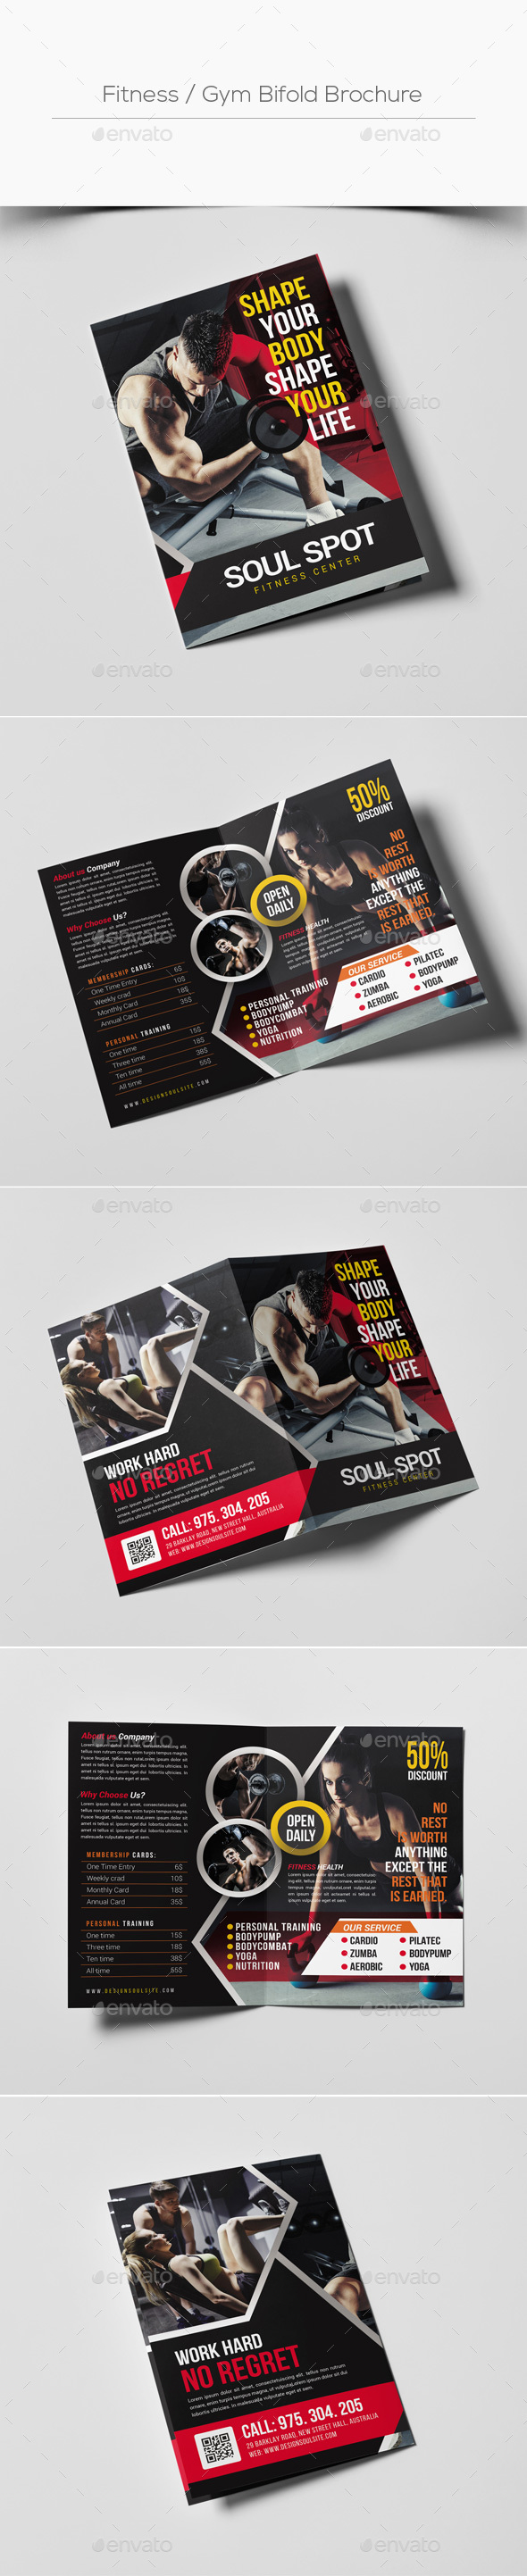 Fitness / Gym Bifold Brochure - Corporate Brochures